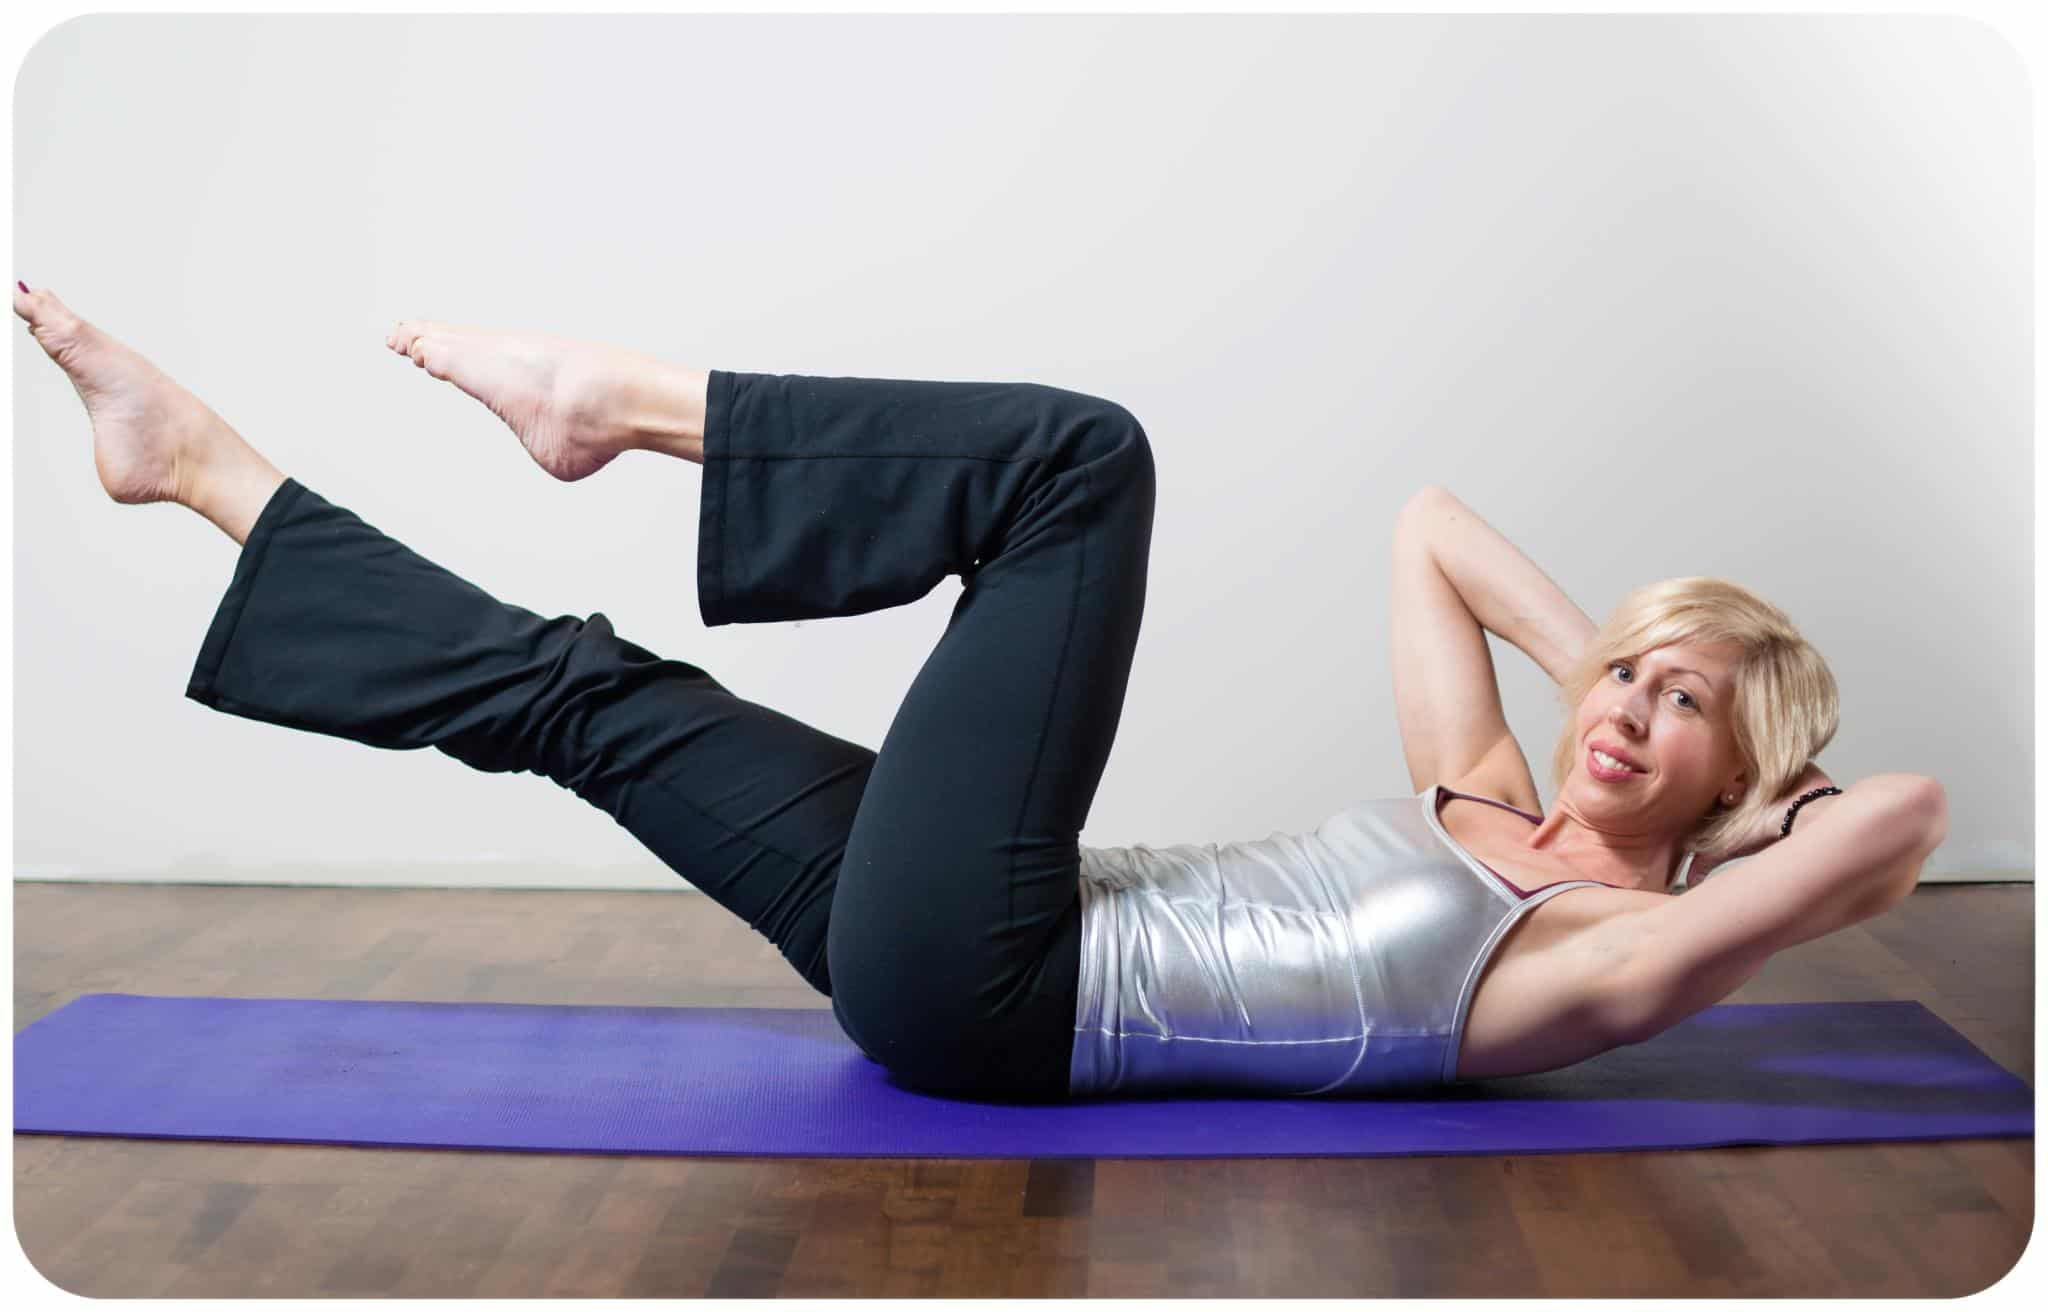 Finding The Right Exercise Mat Sharing's No Fun. Why You Need To Invest In Your Own Mat